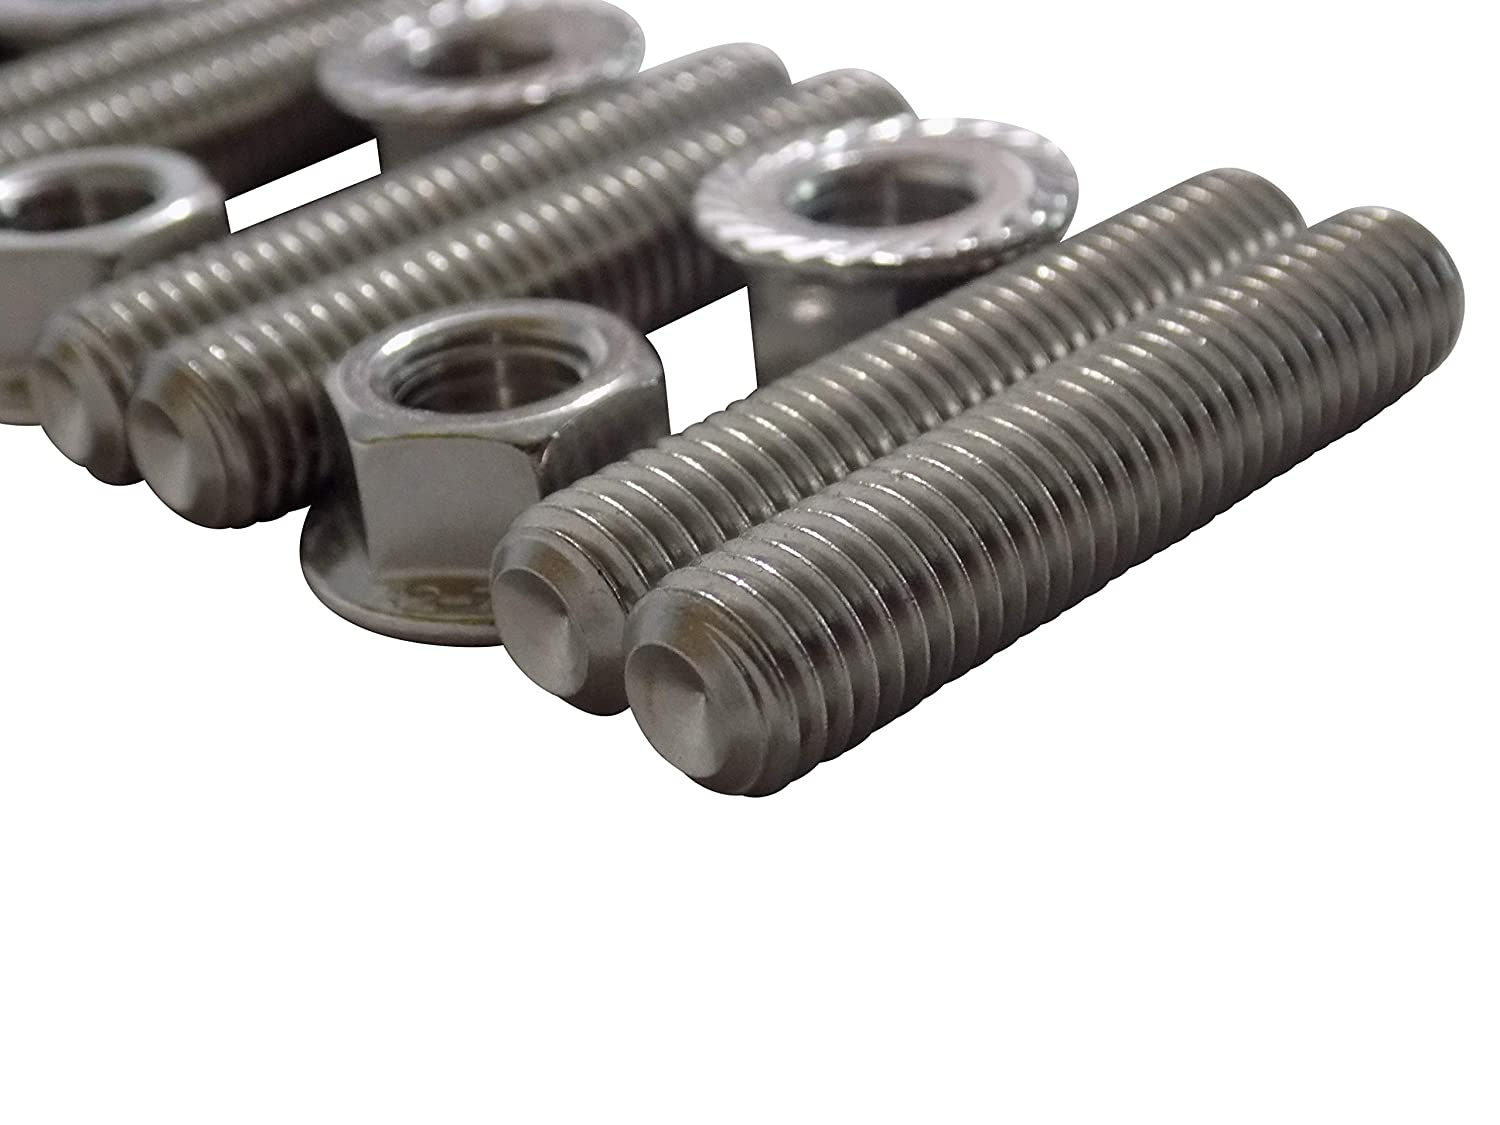 Stainless Exhaust Manifold Stud Kit for 1989-2019 5.9l /& 6.7l Cummins Turbo Diesel